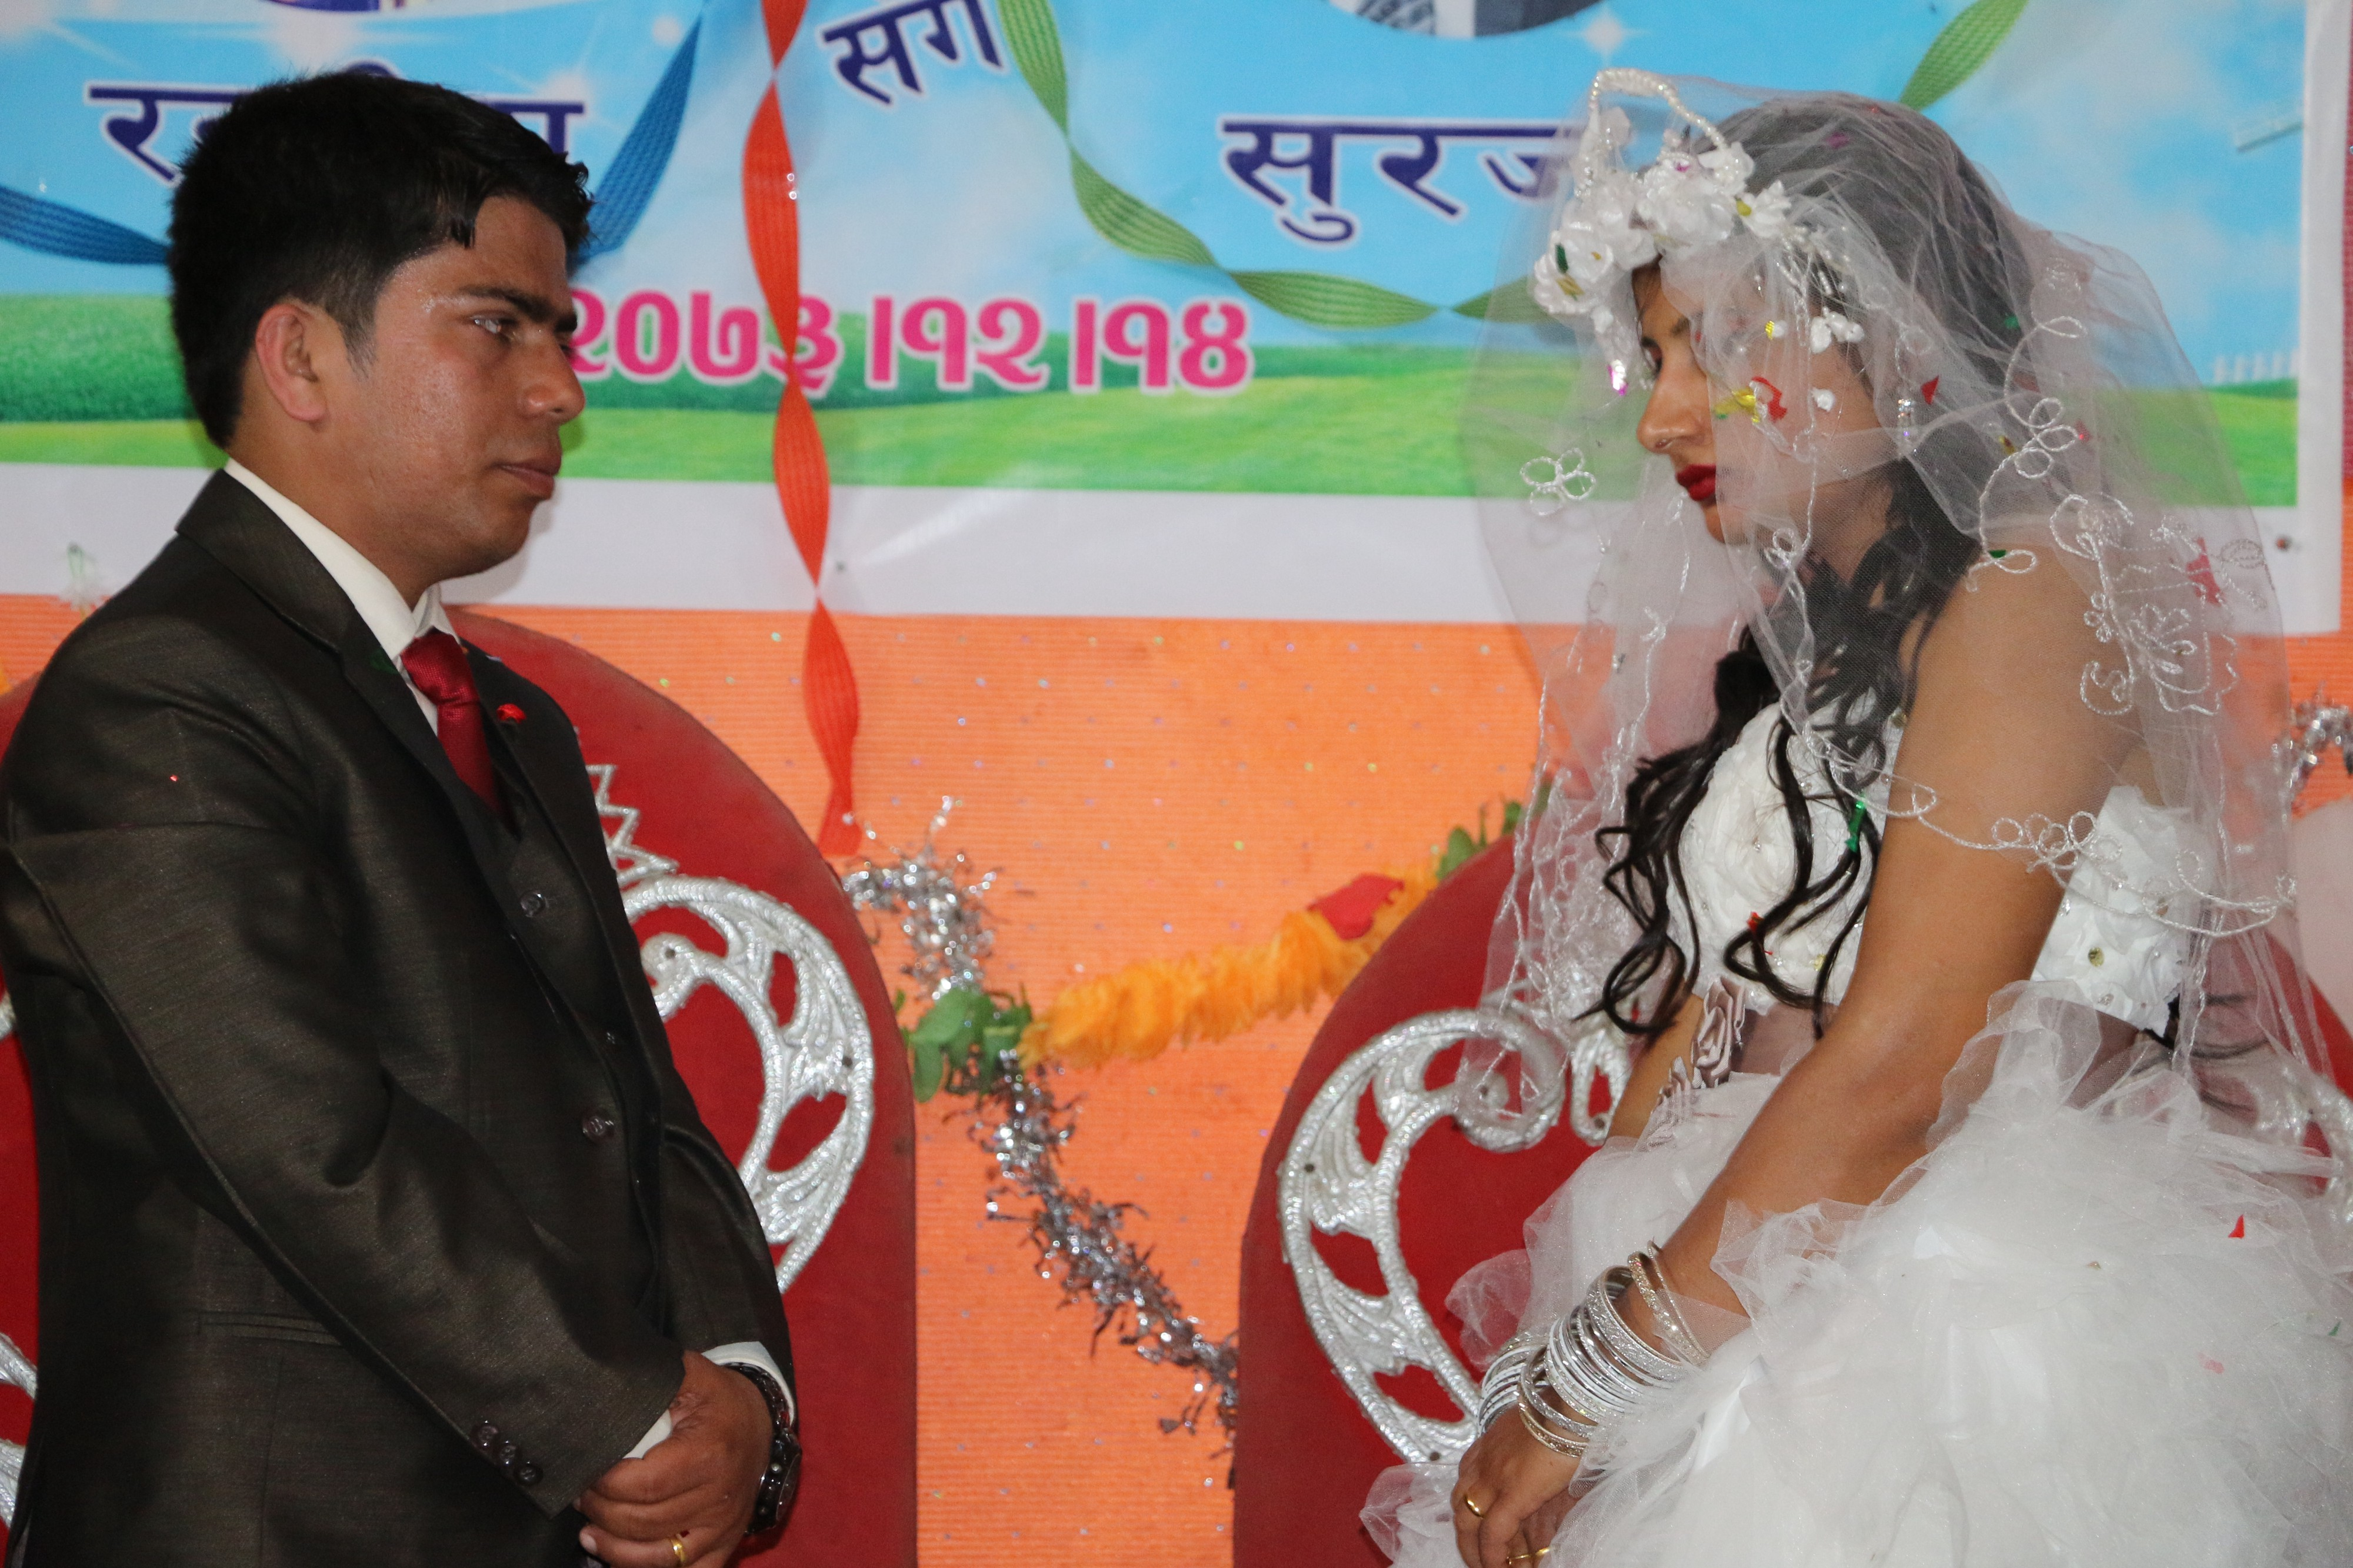 We each married a stranger, that's why we do not look happy in the day wedding day. My wife and I in the picture.